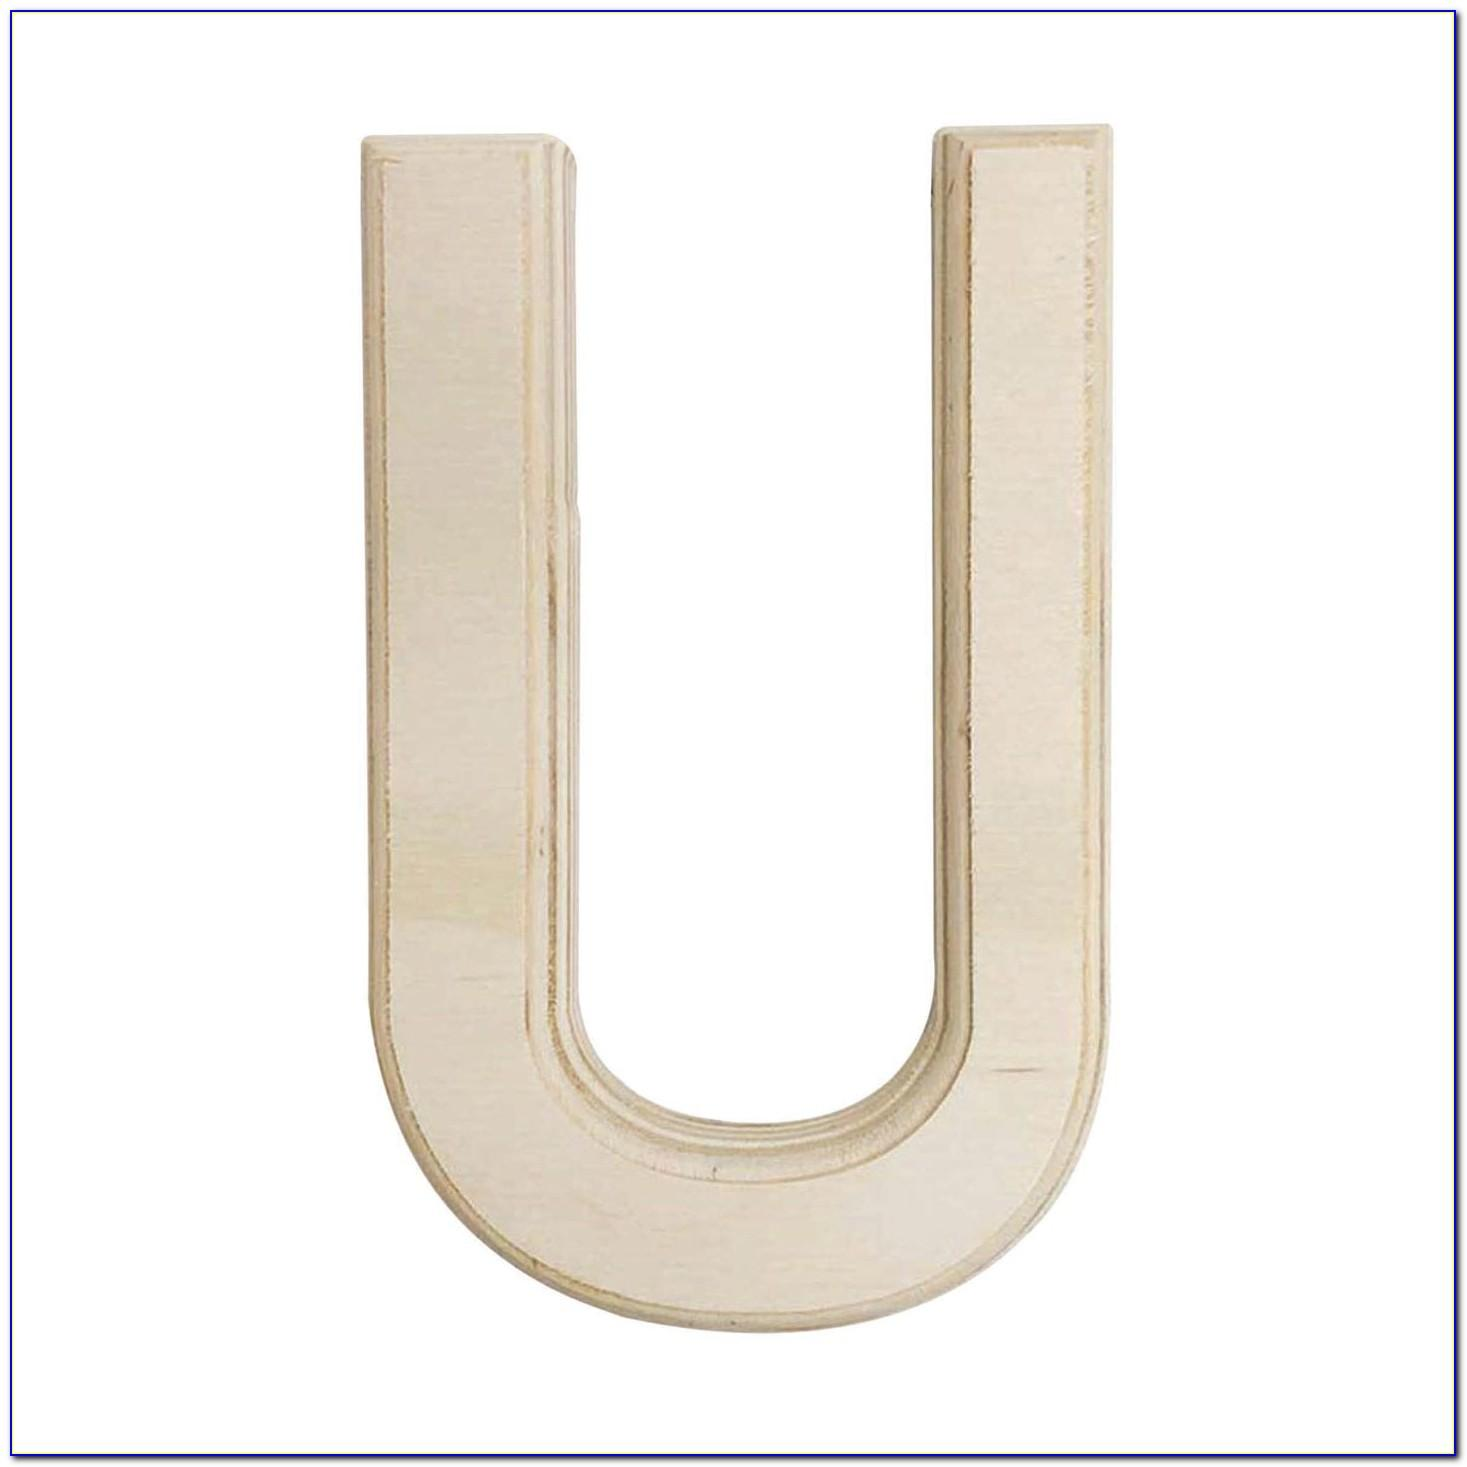 6 Inch Wooden Letters For Sale